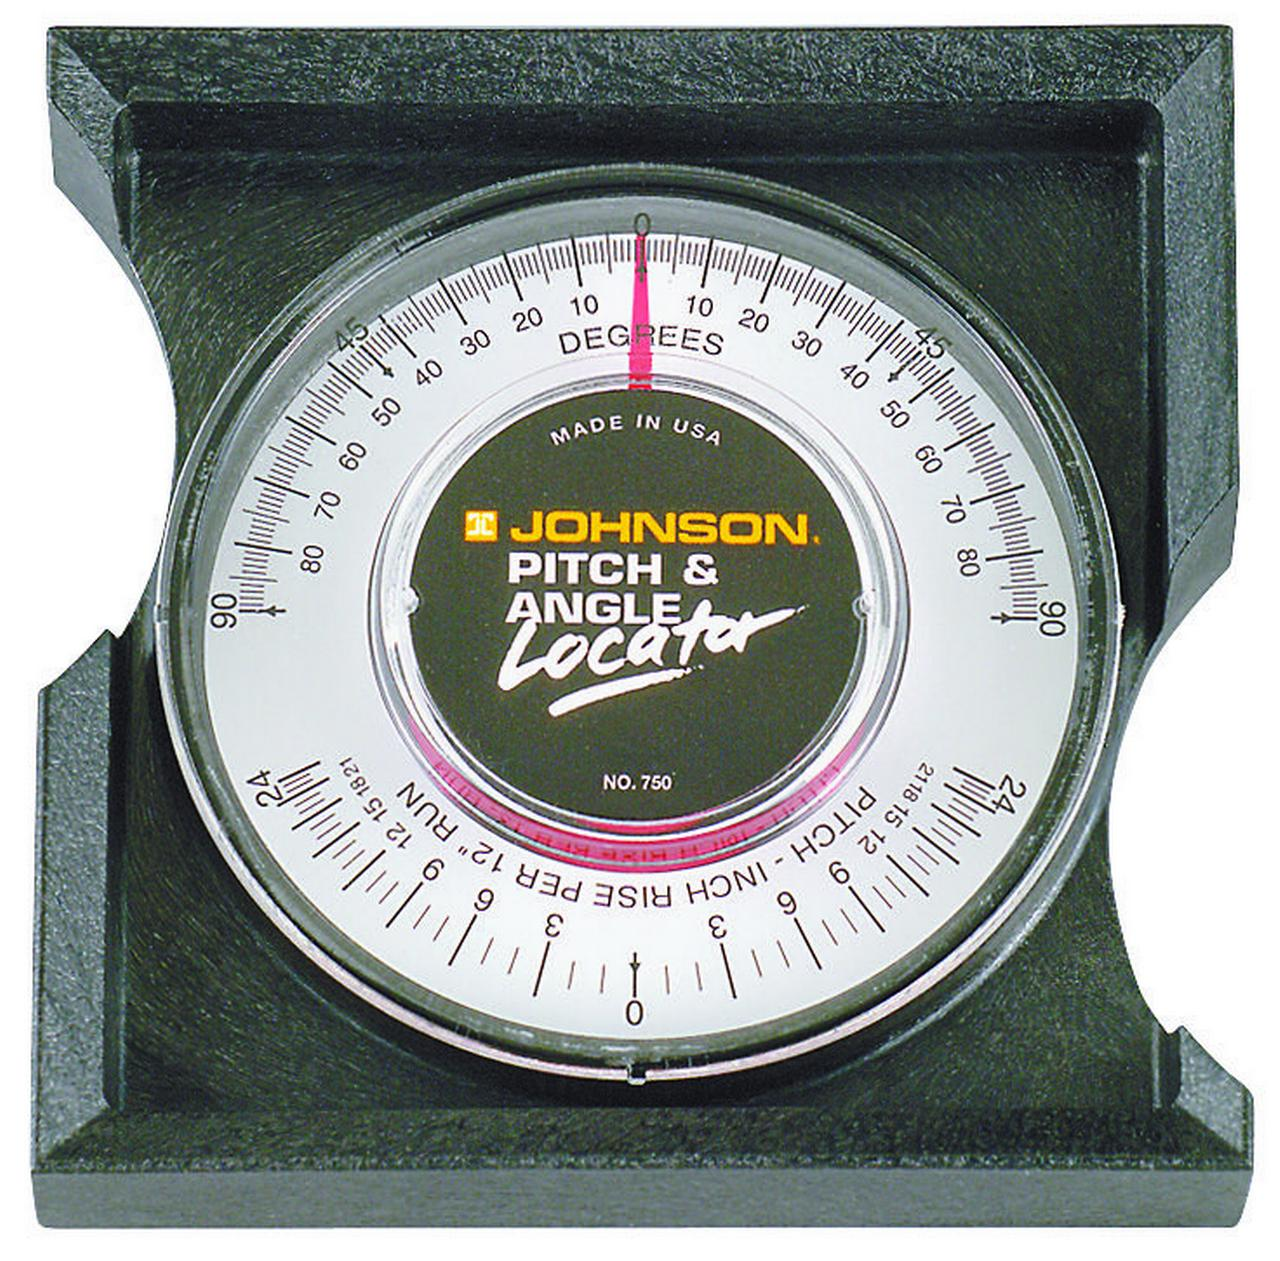 Johnson Pitch/Slope Locator, Black, 750